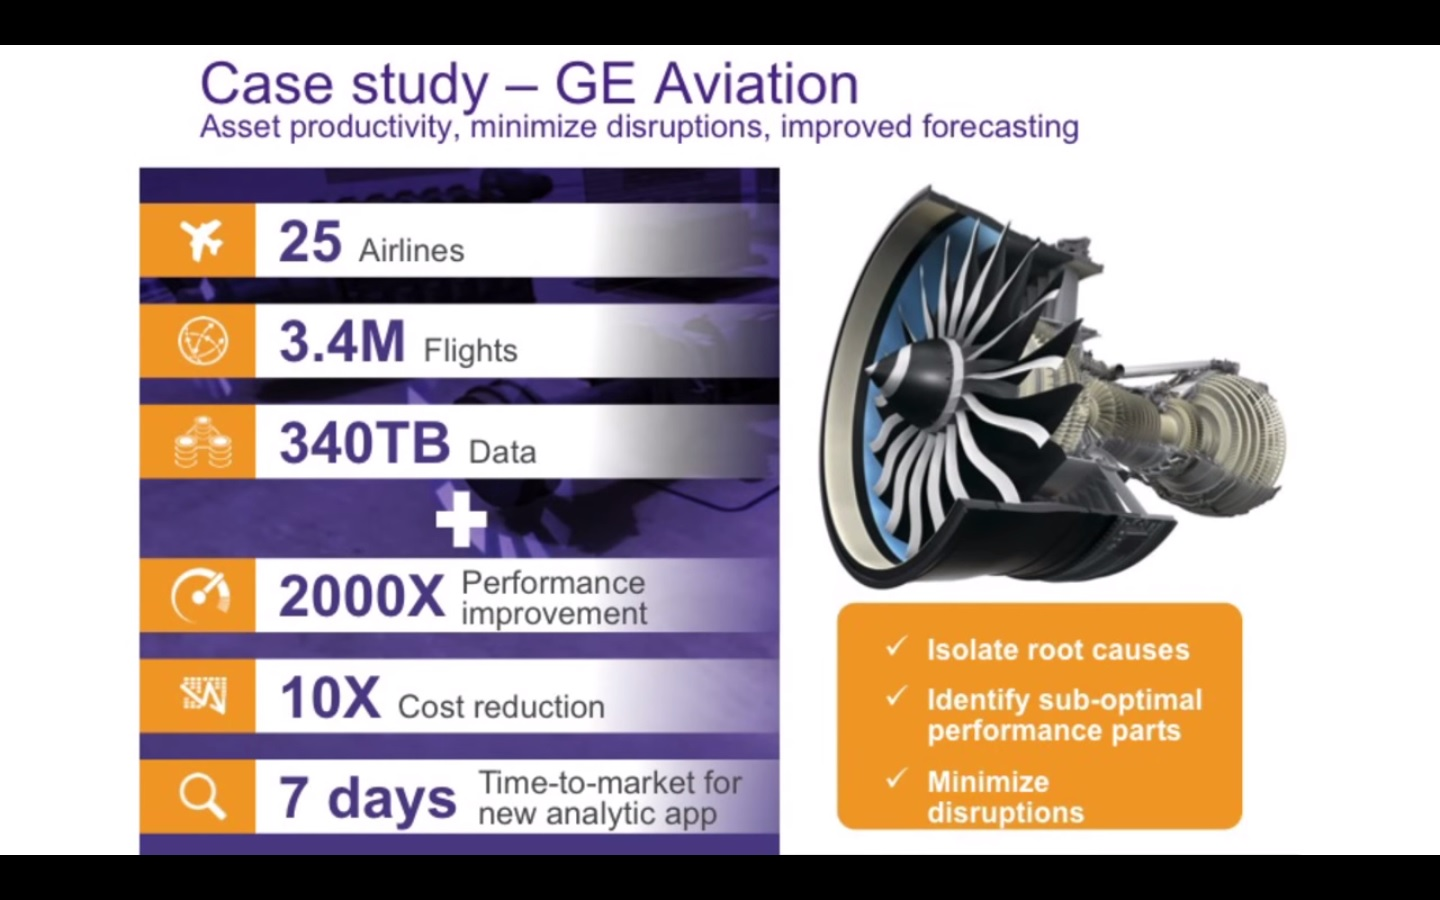 Case study - GE aviation